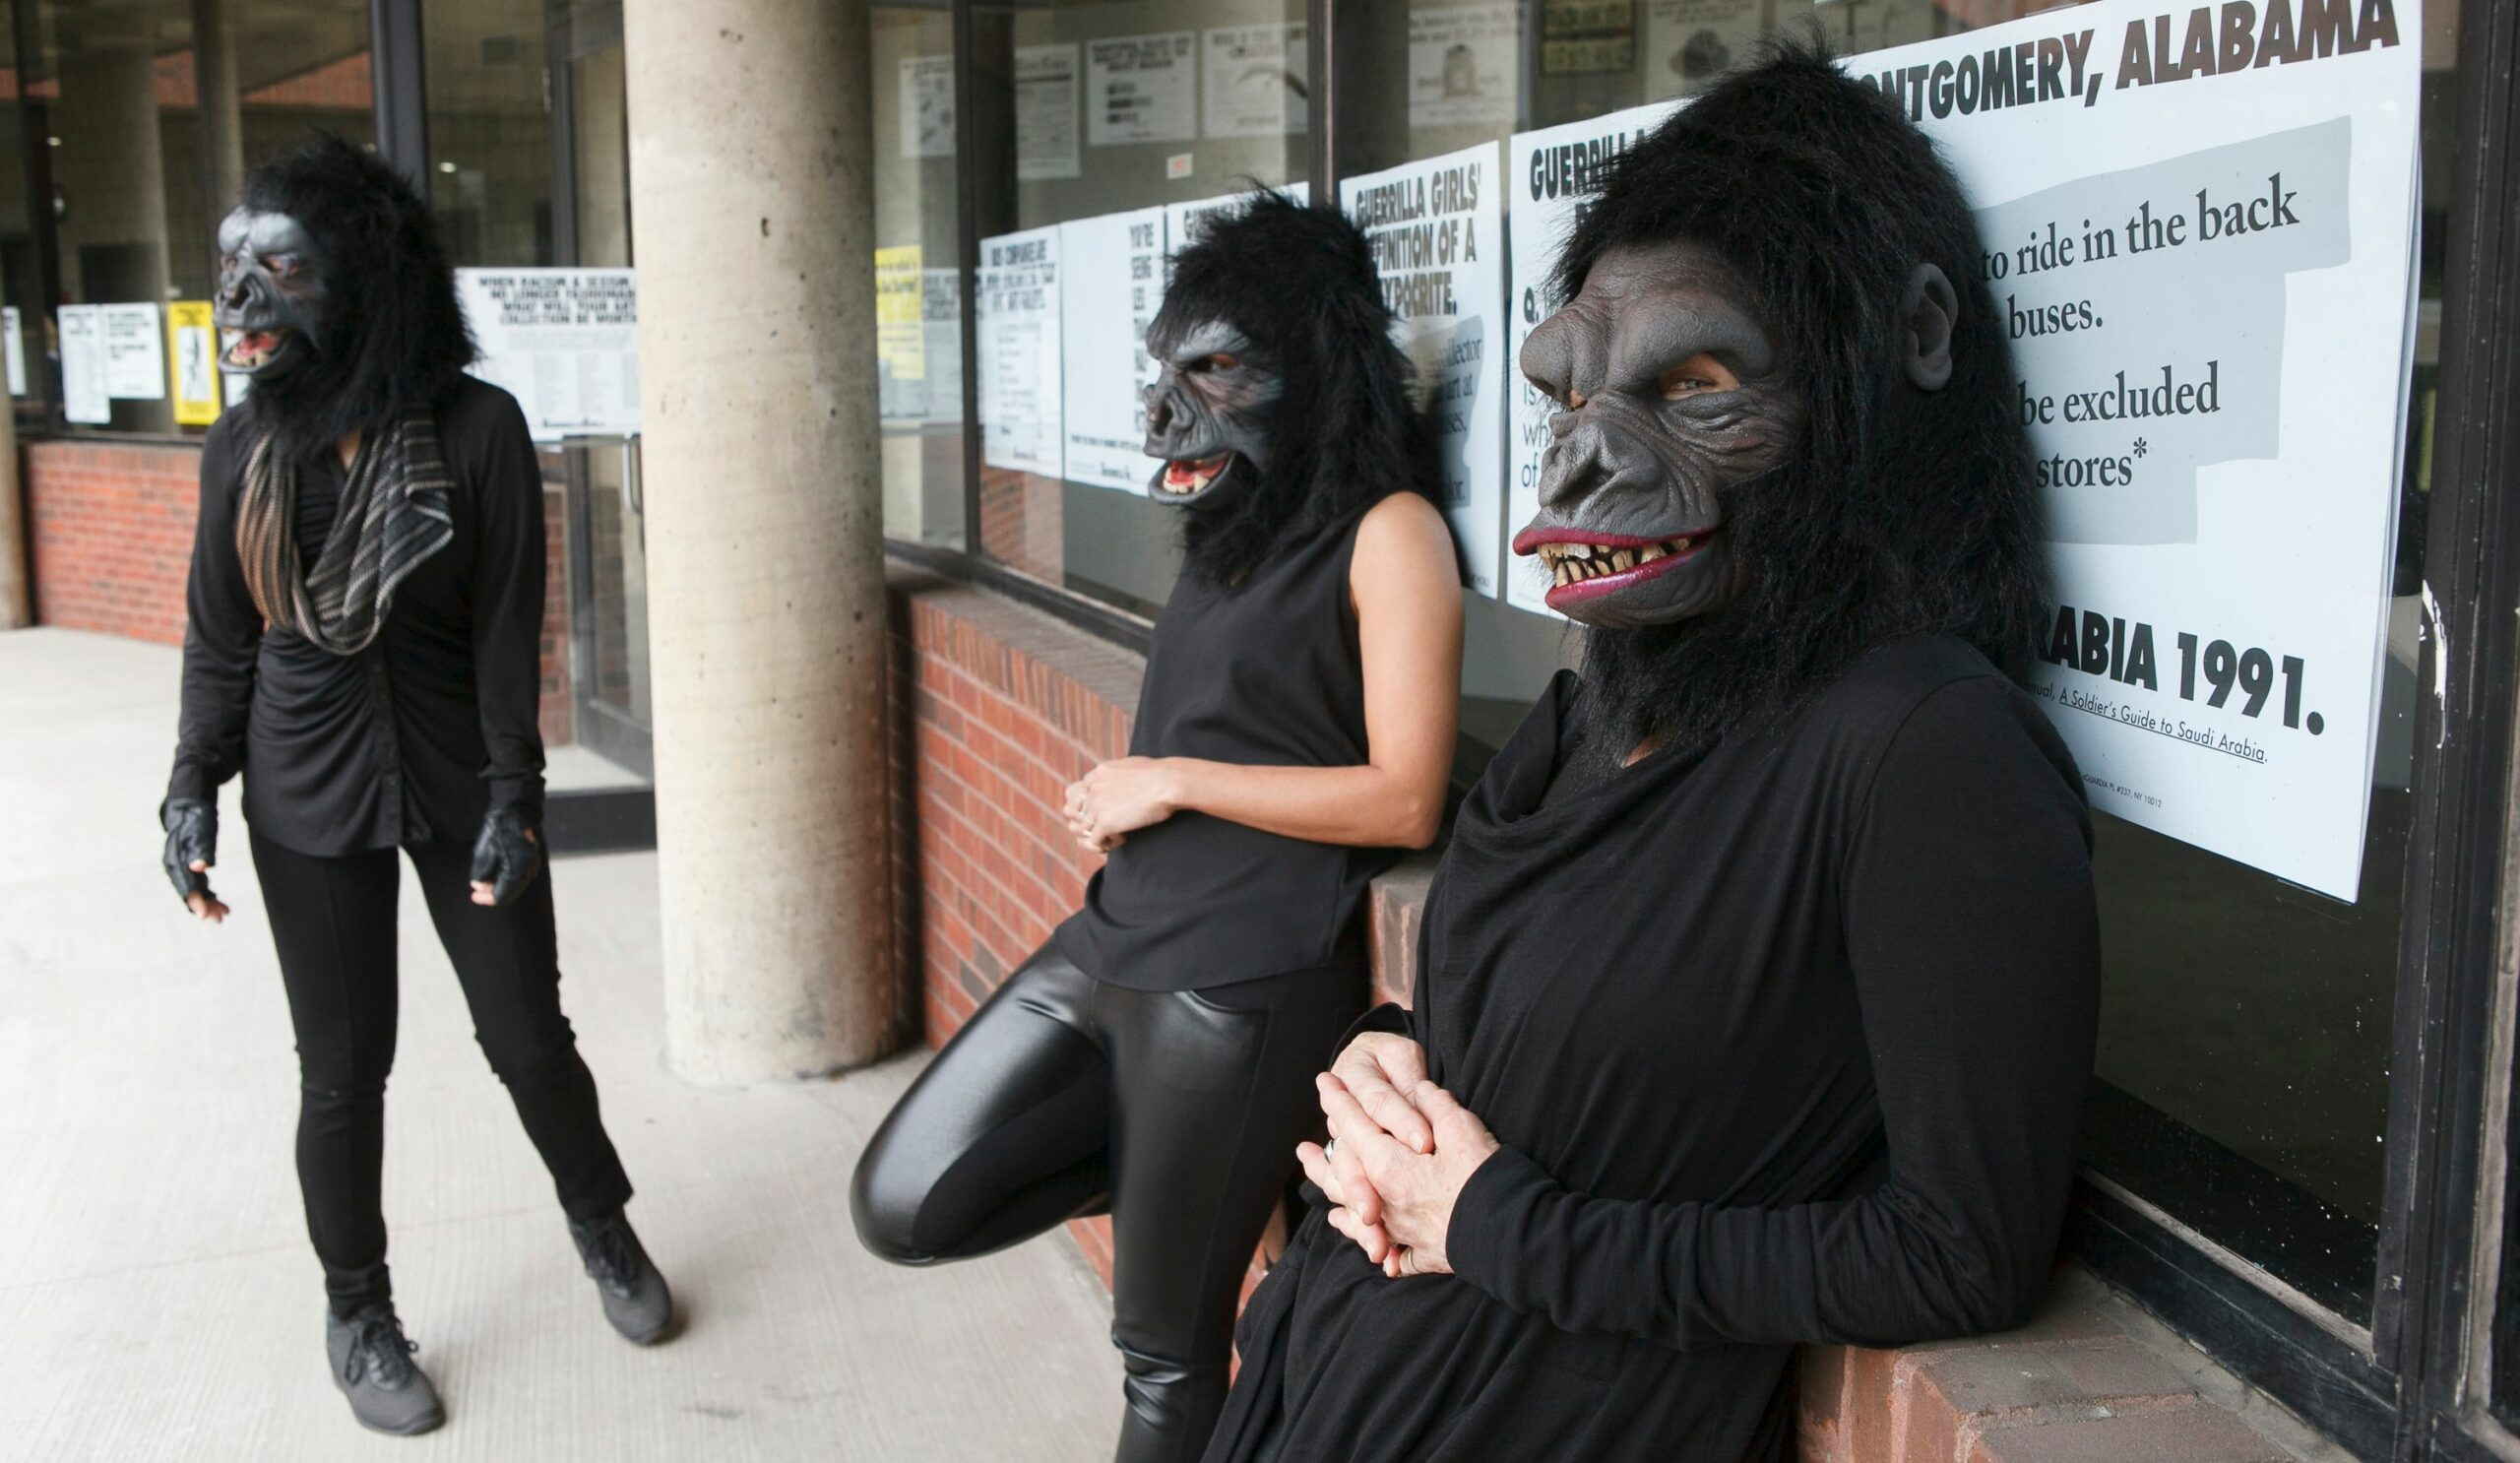 """Photo © Andrew Hindraker Guerrilla Girls artists Kathe Kollwitz, Zubeida Agha and Frida Kahlo during a press preview for an exhibition of works by the Guerrilla Girls titled """"Not Ready To Make Nice: 30 Years And Still Counting,"""" at the Abrams Art Center, 466 Grand St, New York, NY on Thursday, April 30, 2015.Photograph by Andrew Hinderaker"""